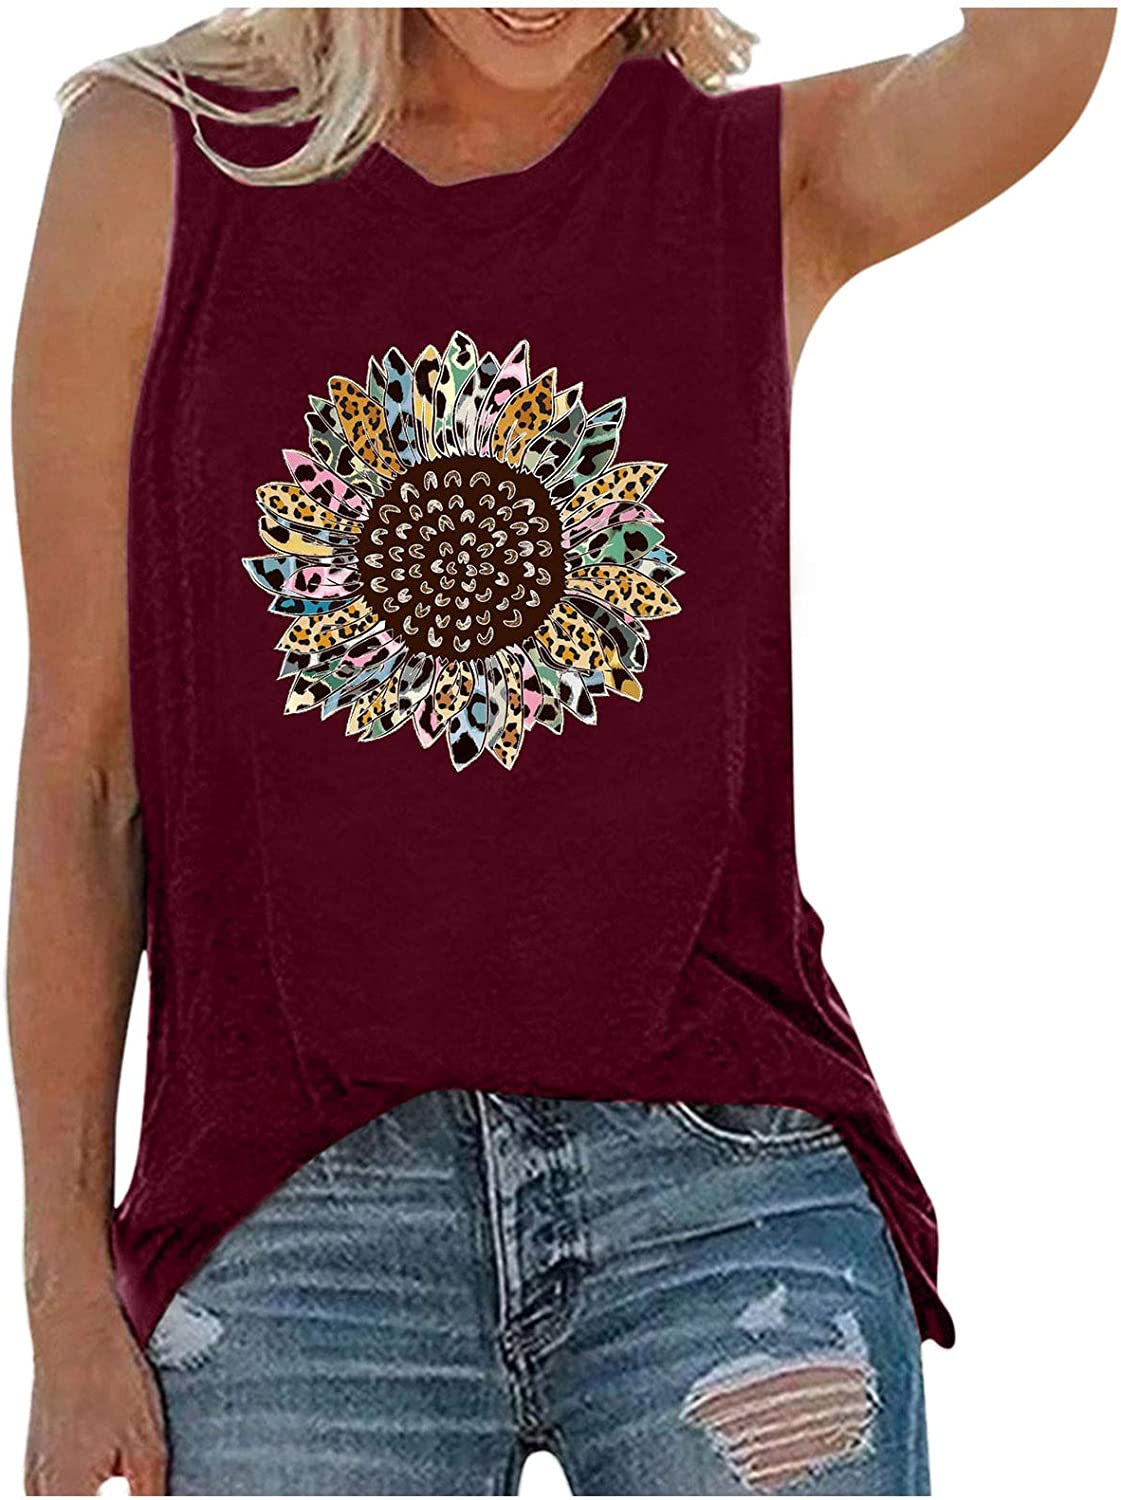 Tank Tops for Women,Womens Tops for Independence Day Women Sleeveless O-Neck Vest Tank Shirt Tops